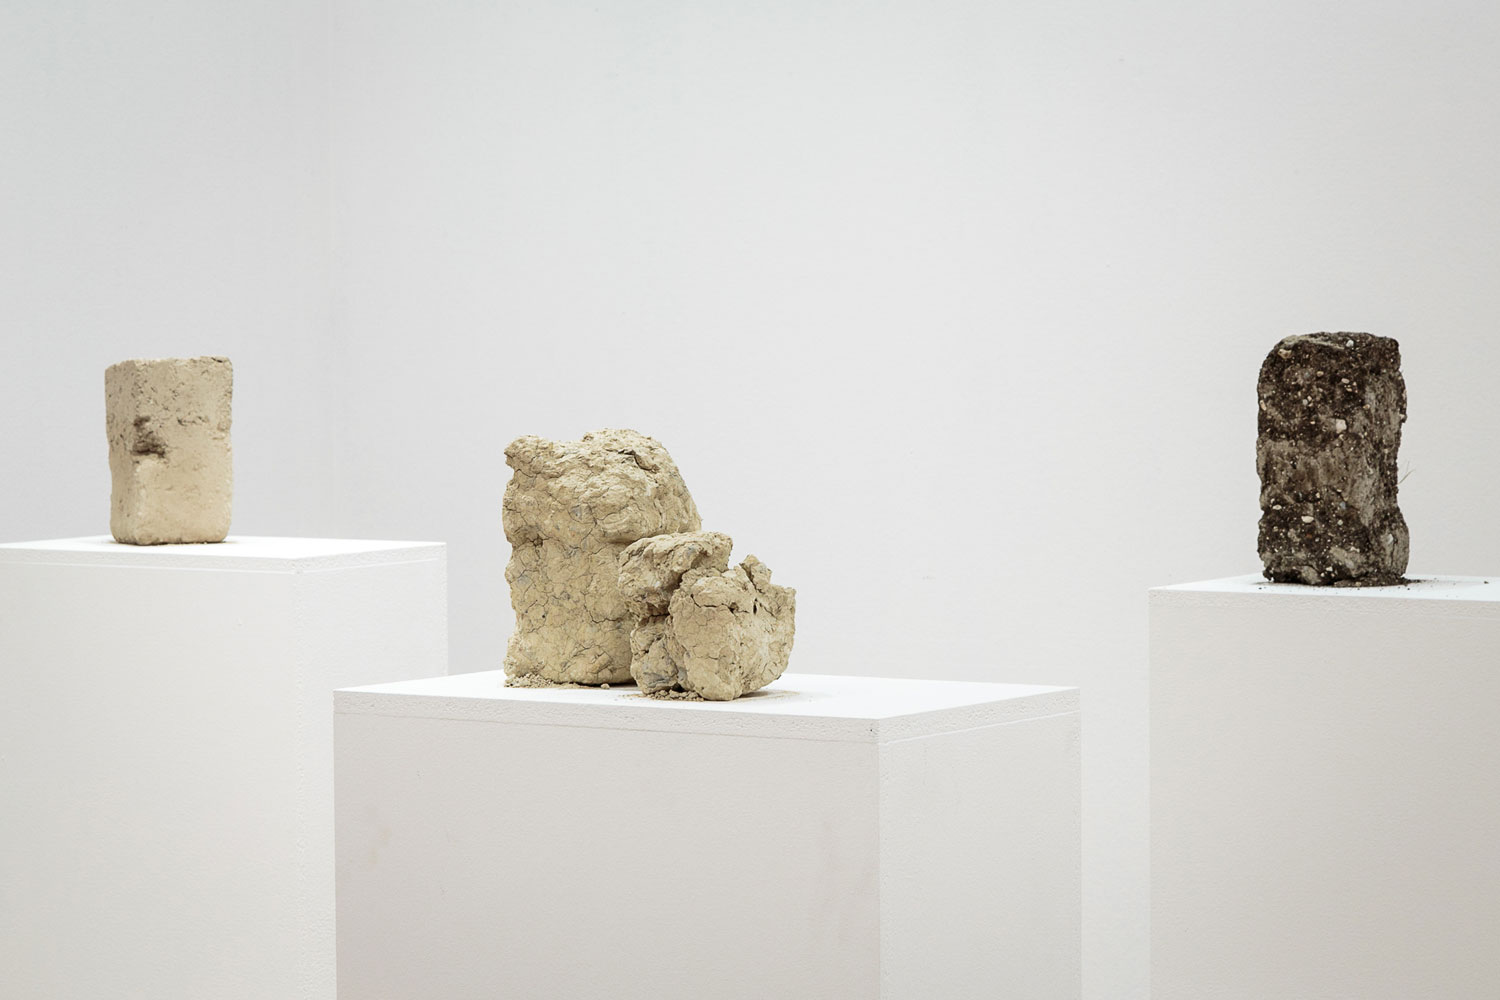 Alessandro Piangiamore | Tutto il vento che c'è (from left to right: Ander, Montes, Balinot), 2013, soil, wind, approx. cm 13x13×30 each.